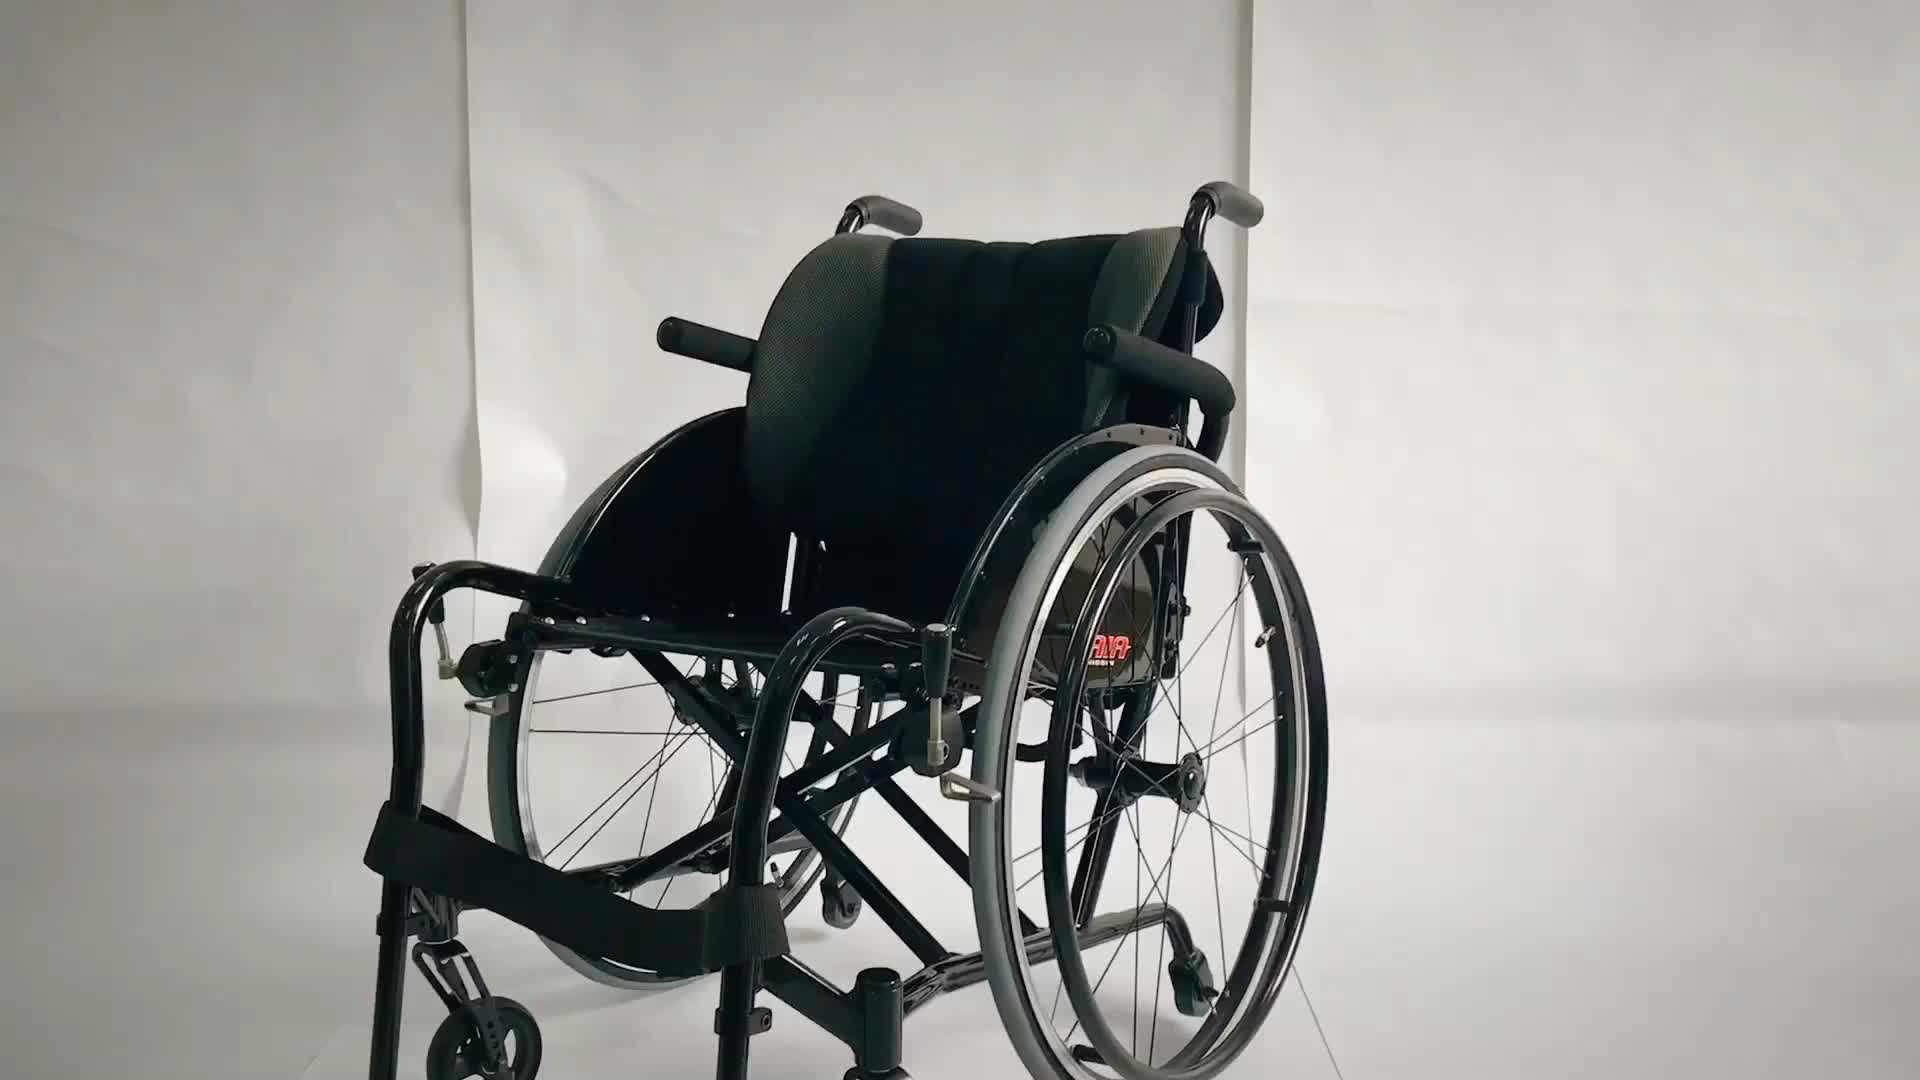 Hot selling model flexible tailor-made active manual folding sports wheelchair